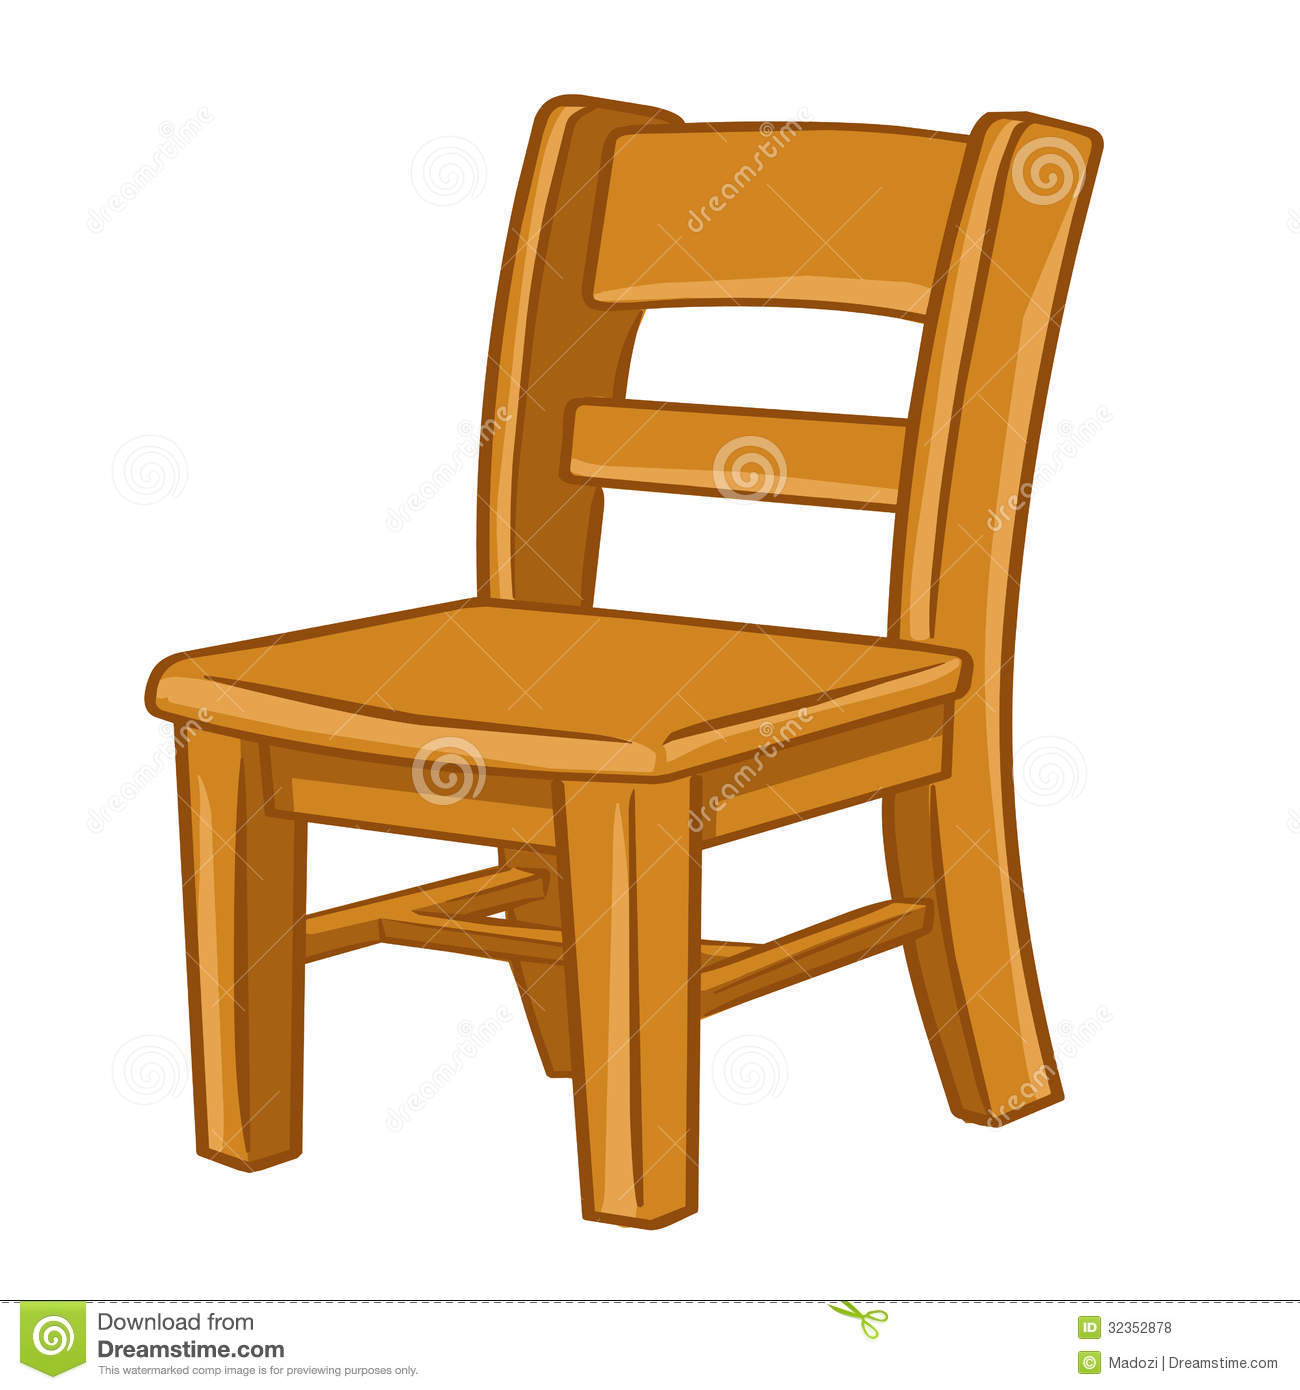 Chair clipart #3, Download drawings